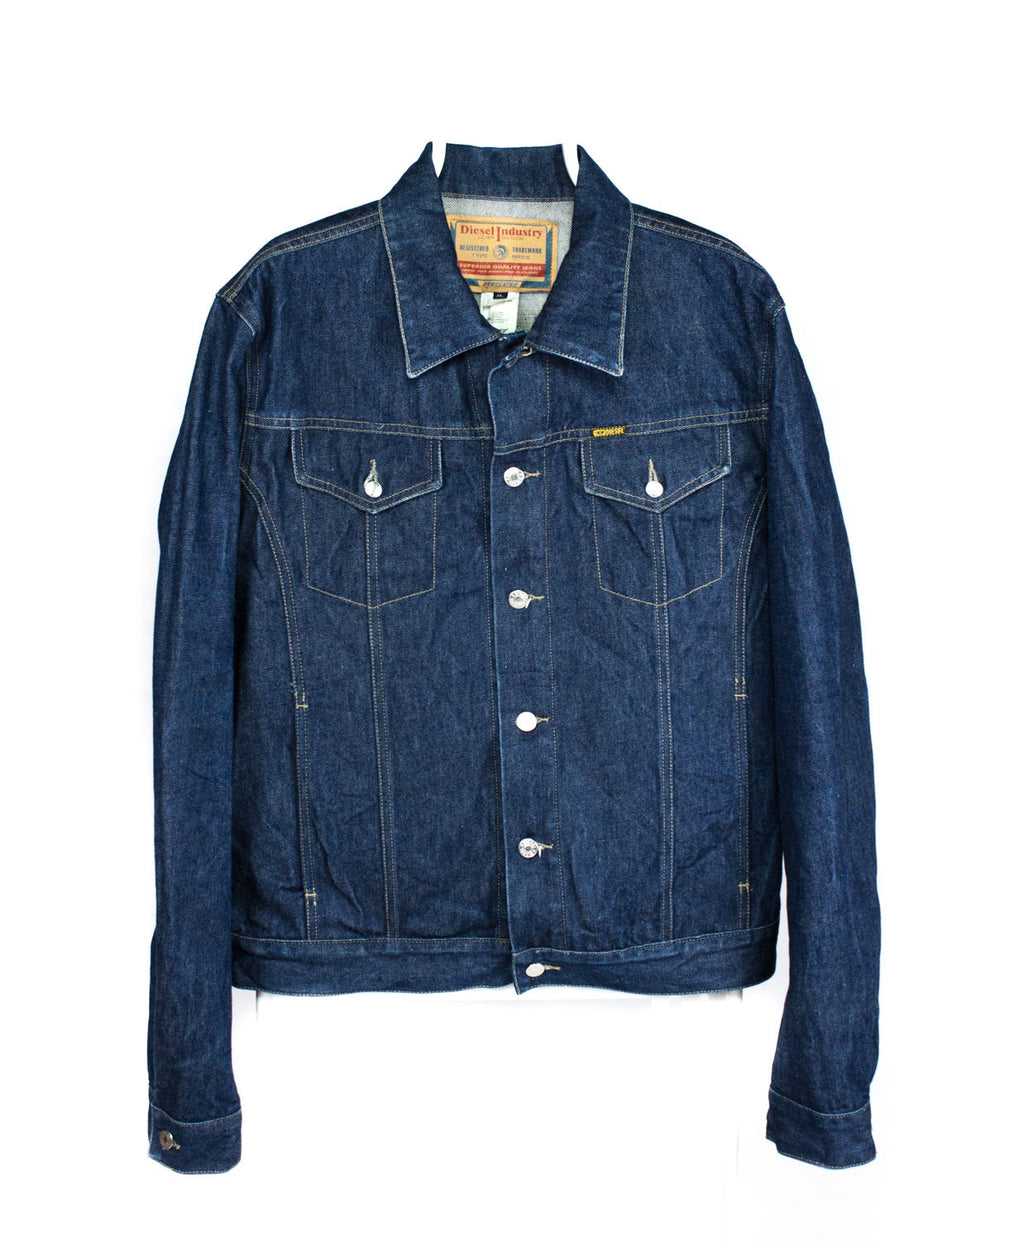 DIESEL men's DRAKE Dry Denim Blue Trucker Jacket, SIZE XL - secondfirst